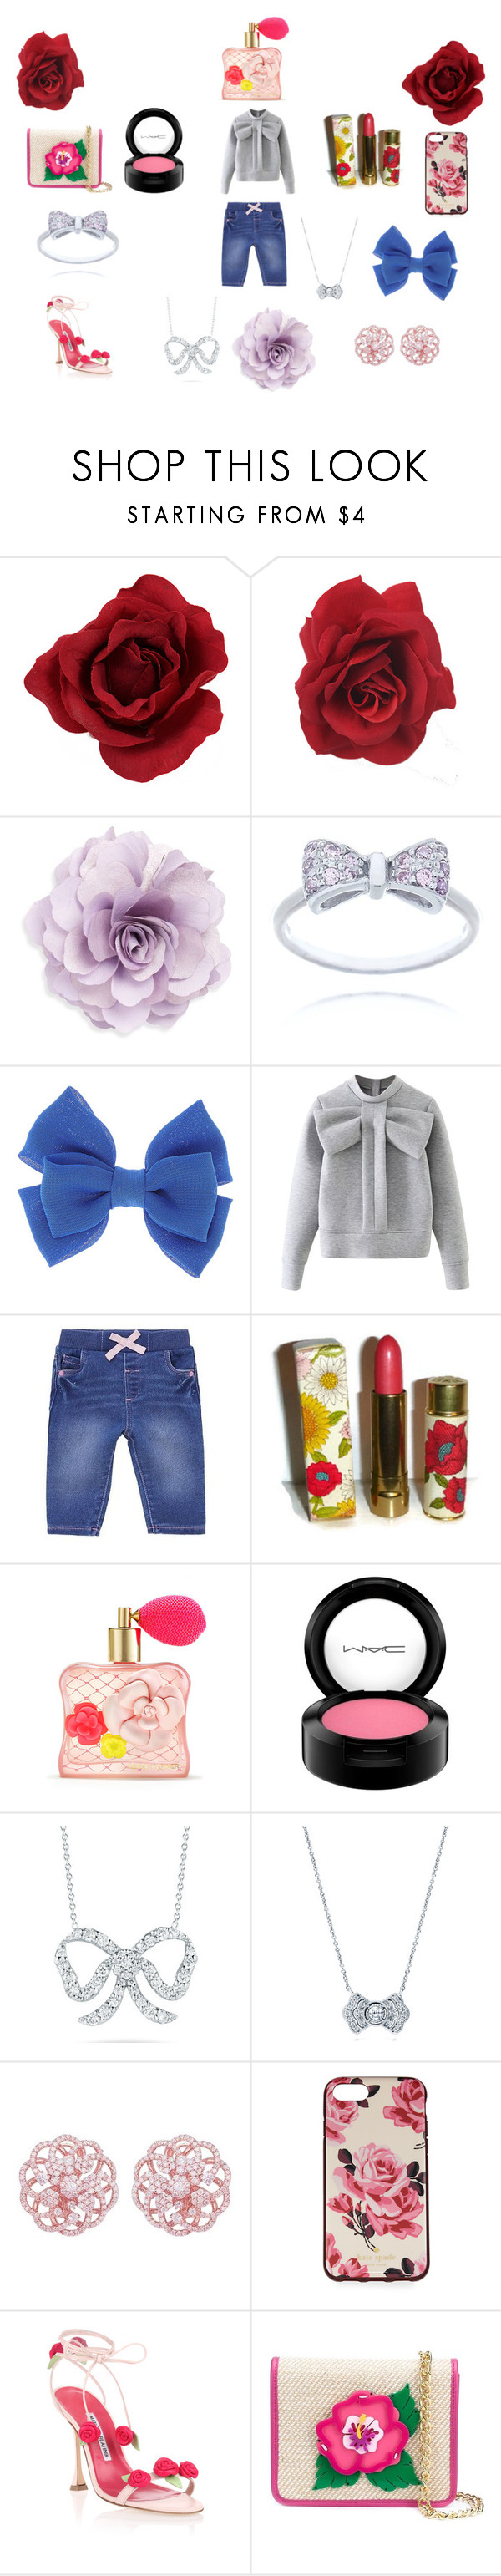 """""""Happy Day Toworrow"""" by ibur-7snowflakes ❤ liked on Polyvore featuring Cara, WithChic, Avon, Victoria's Secret, MAC Cosmetics, Roberto Coin, BERRICLE, Emilio!, Kate Spade and Manolo Blahnik"""